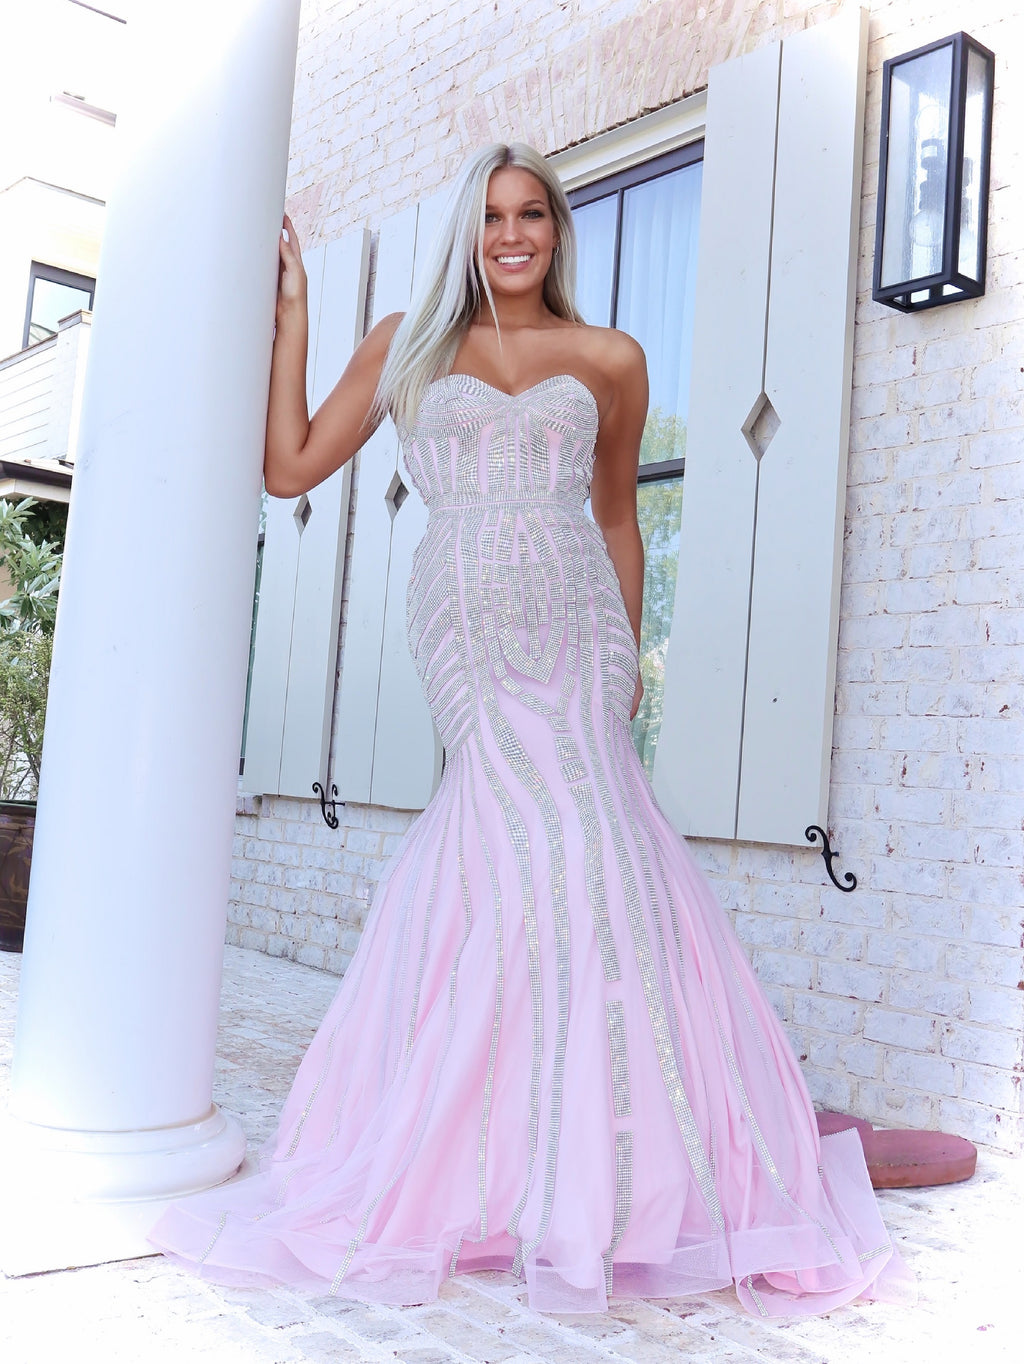 Blonde model in a Pink Sophisticated Mermaid with Sparkling Silver Details. And it's at Rsvp Prom and Pageant, your source for the HOTTEST Prom and Pageant Dresses and exclusive evening gowns and located in Atlanta, Georgia!